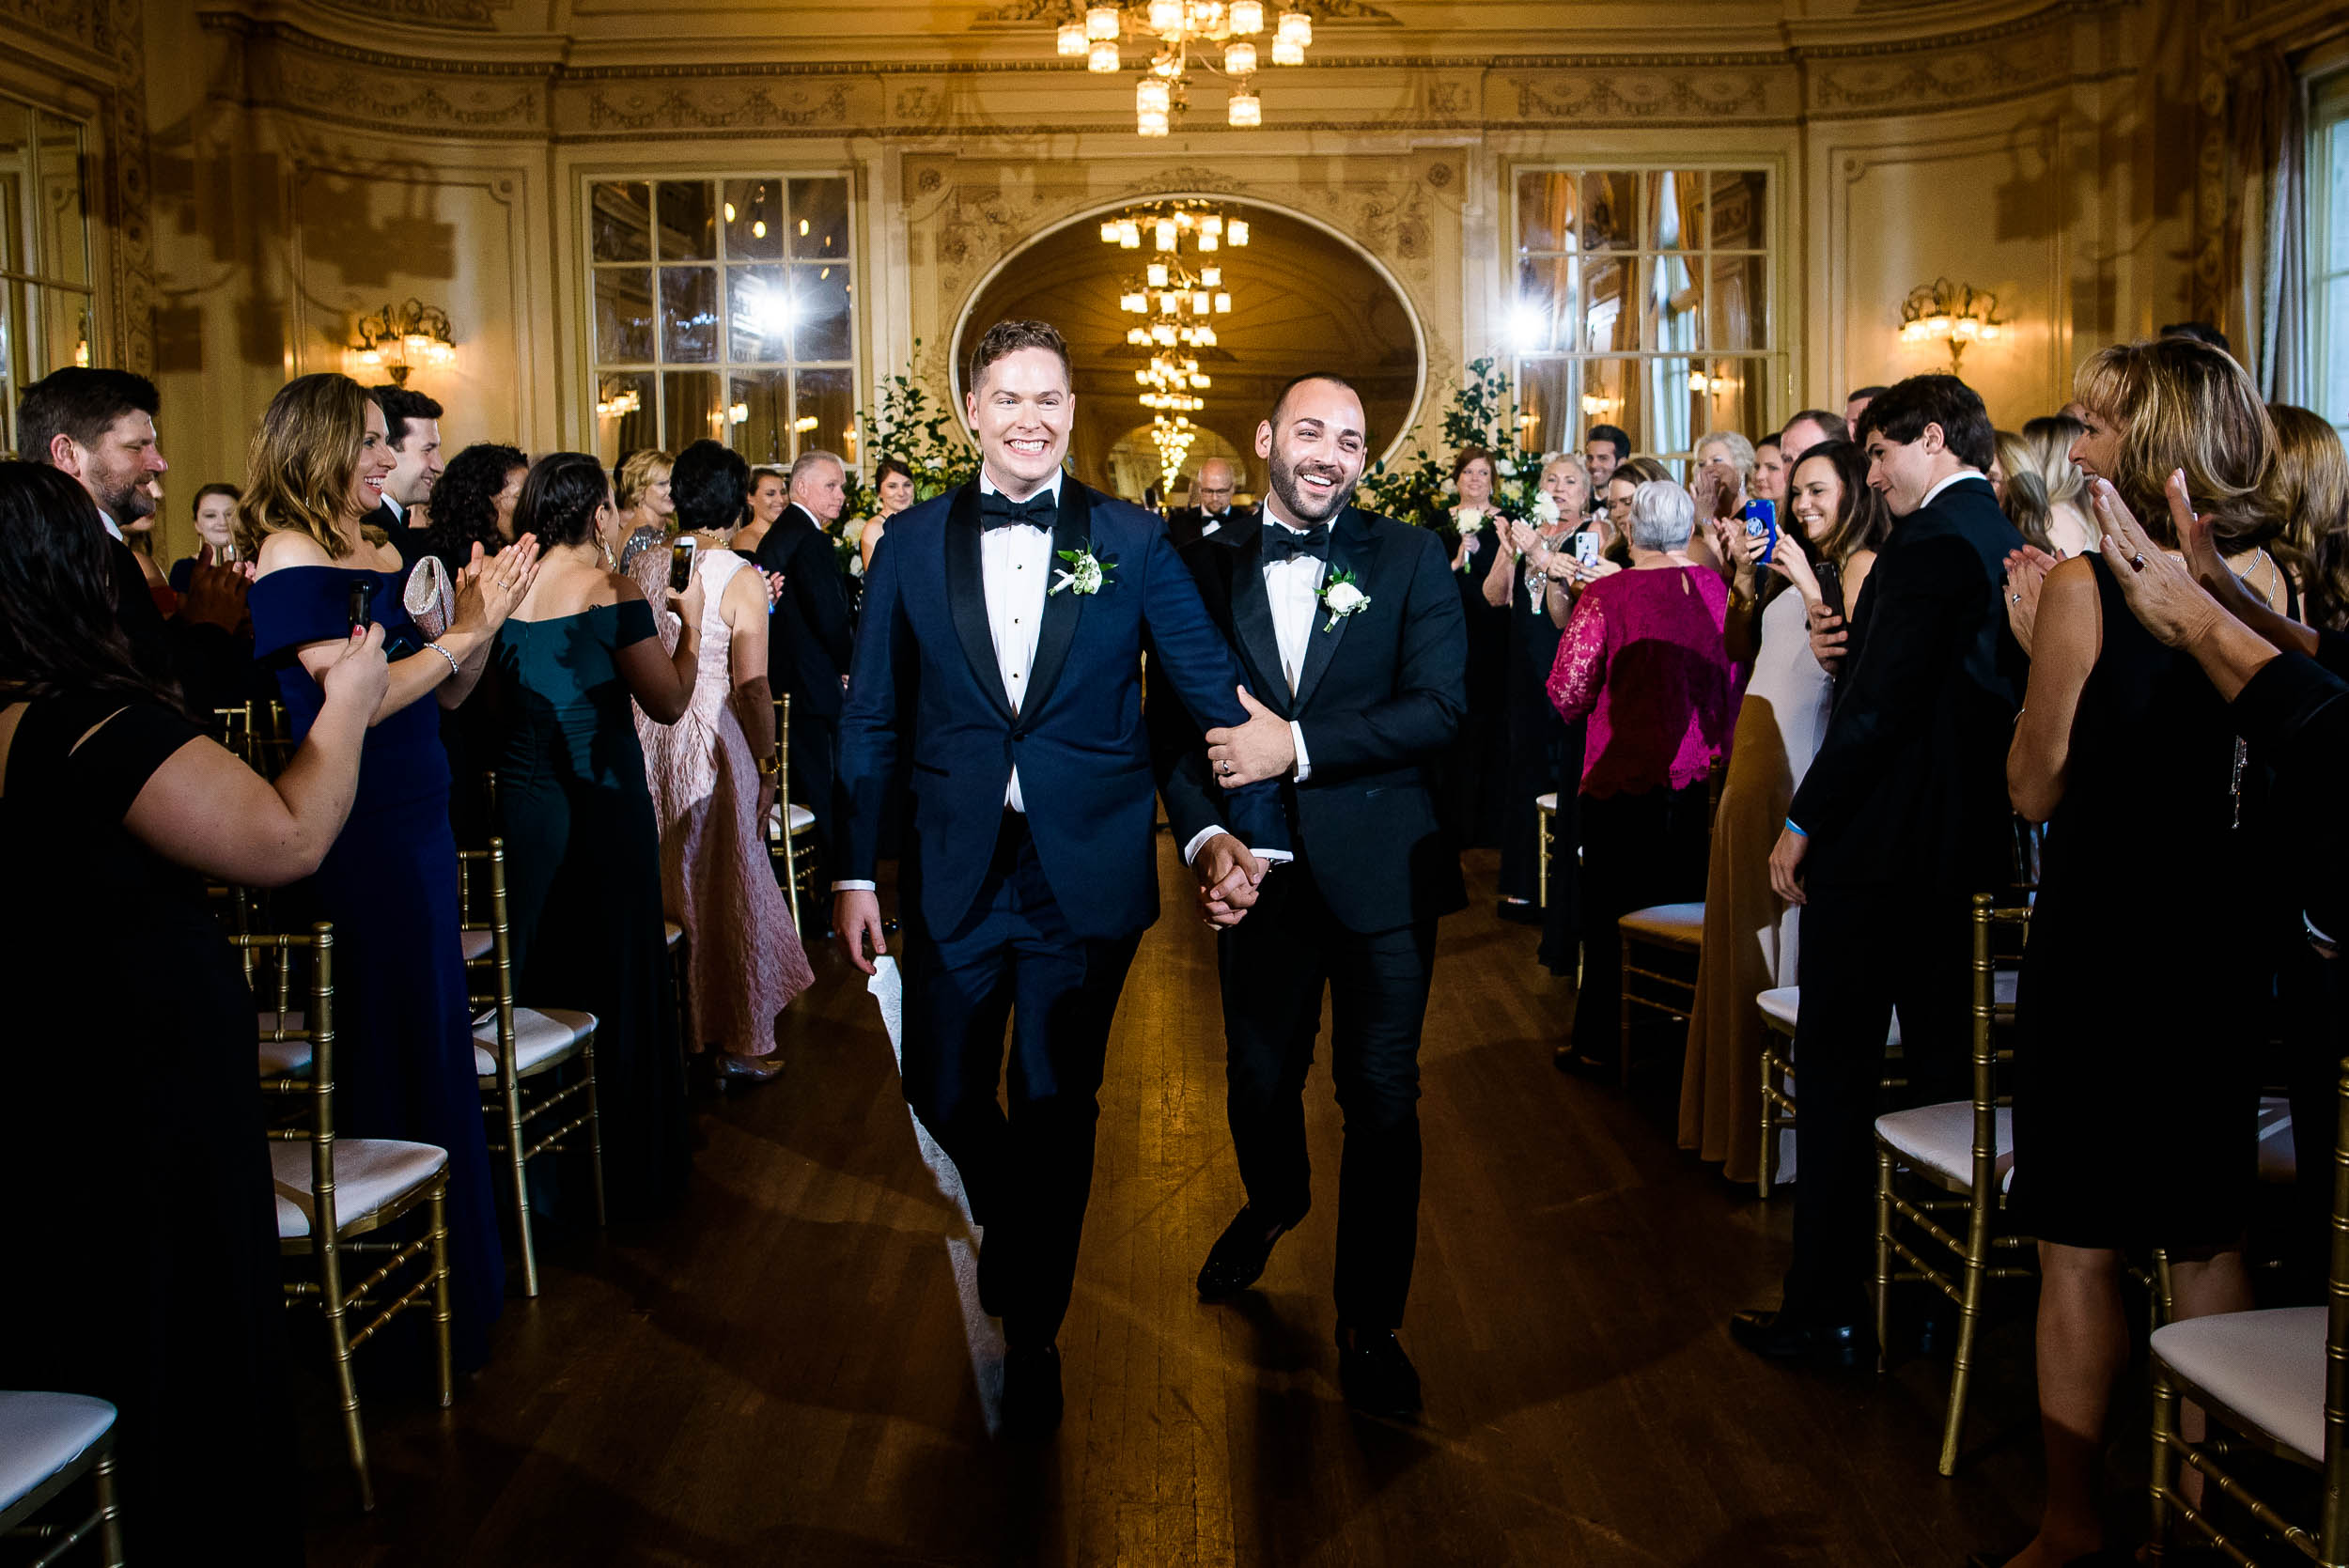 Grooms exiting wedding ceremony for luxurious fall wedding at the Chicago Symphony Center captured by J. Brown Photography. See more wedding ideas at jbrownphotography.com!